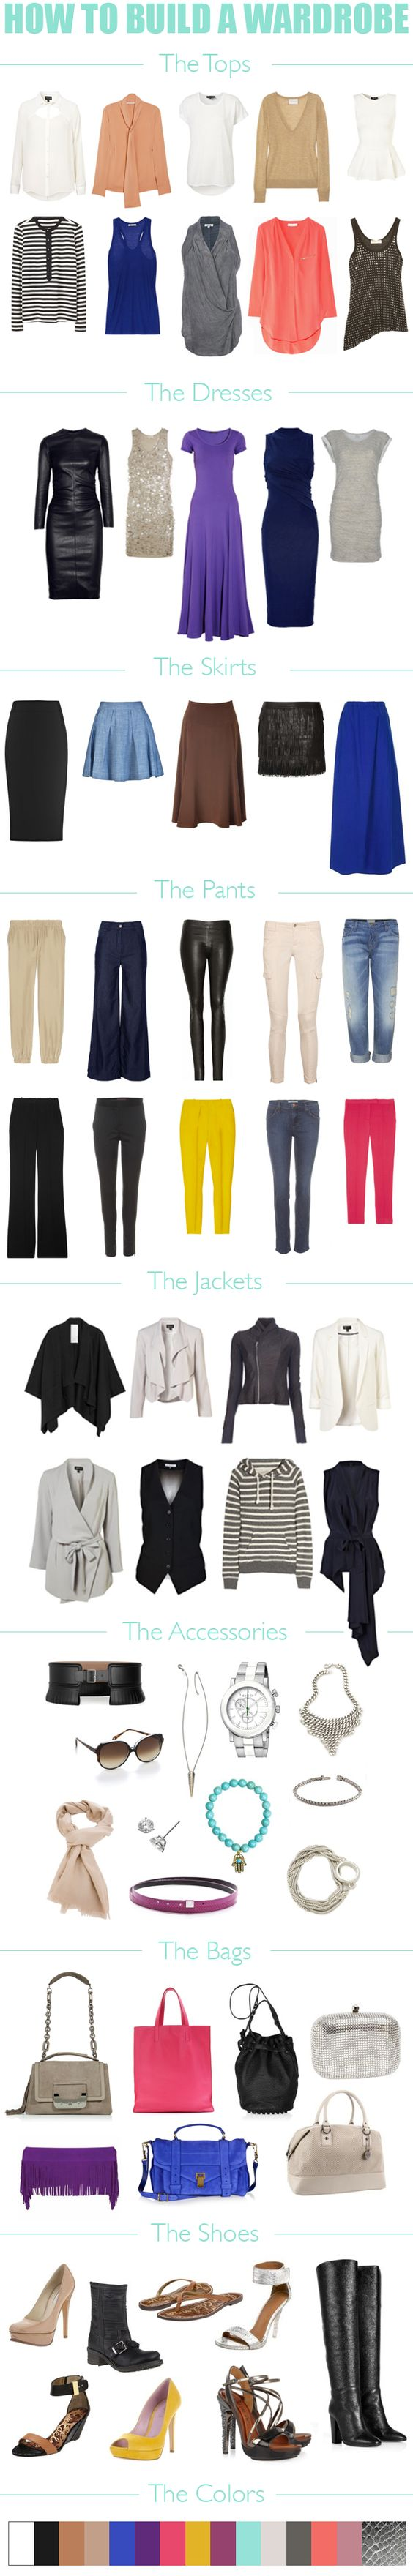 How To Build A Wardrobe - READ it!: